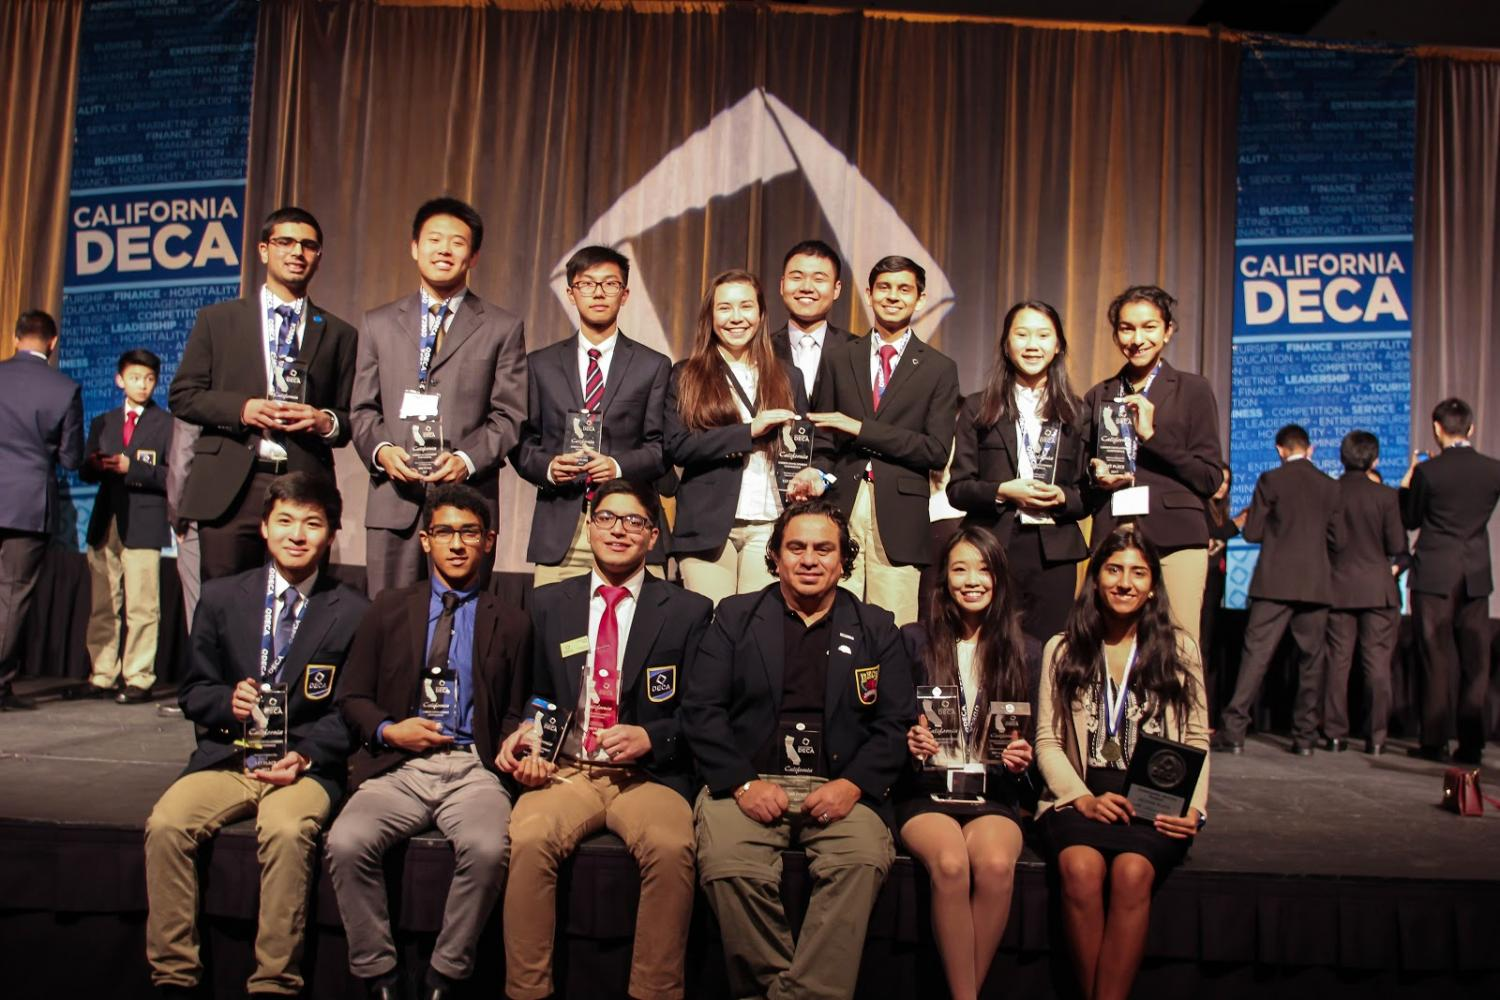 Irvington+DECA+students%2C+along+with+advisors+Mr.+Ballado+and+Greg+Chi%2C+pose+with+their+well-deserved+plaques.